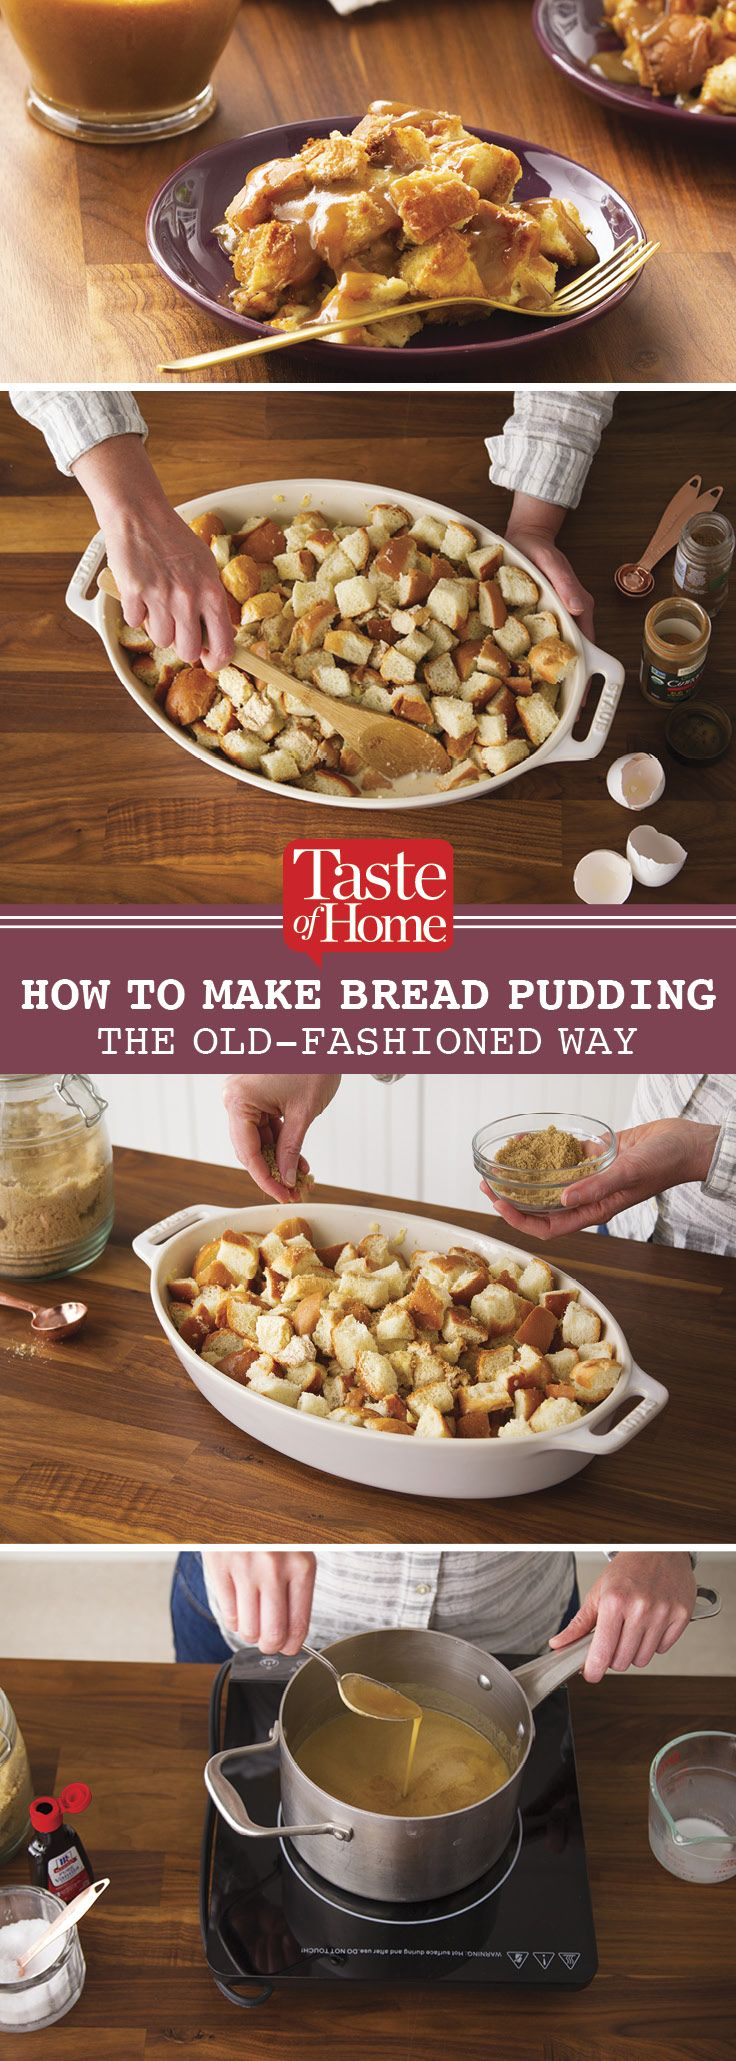 How to Make Bread Pudding the Old-Fashioned Way (from Taste of Home)